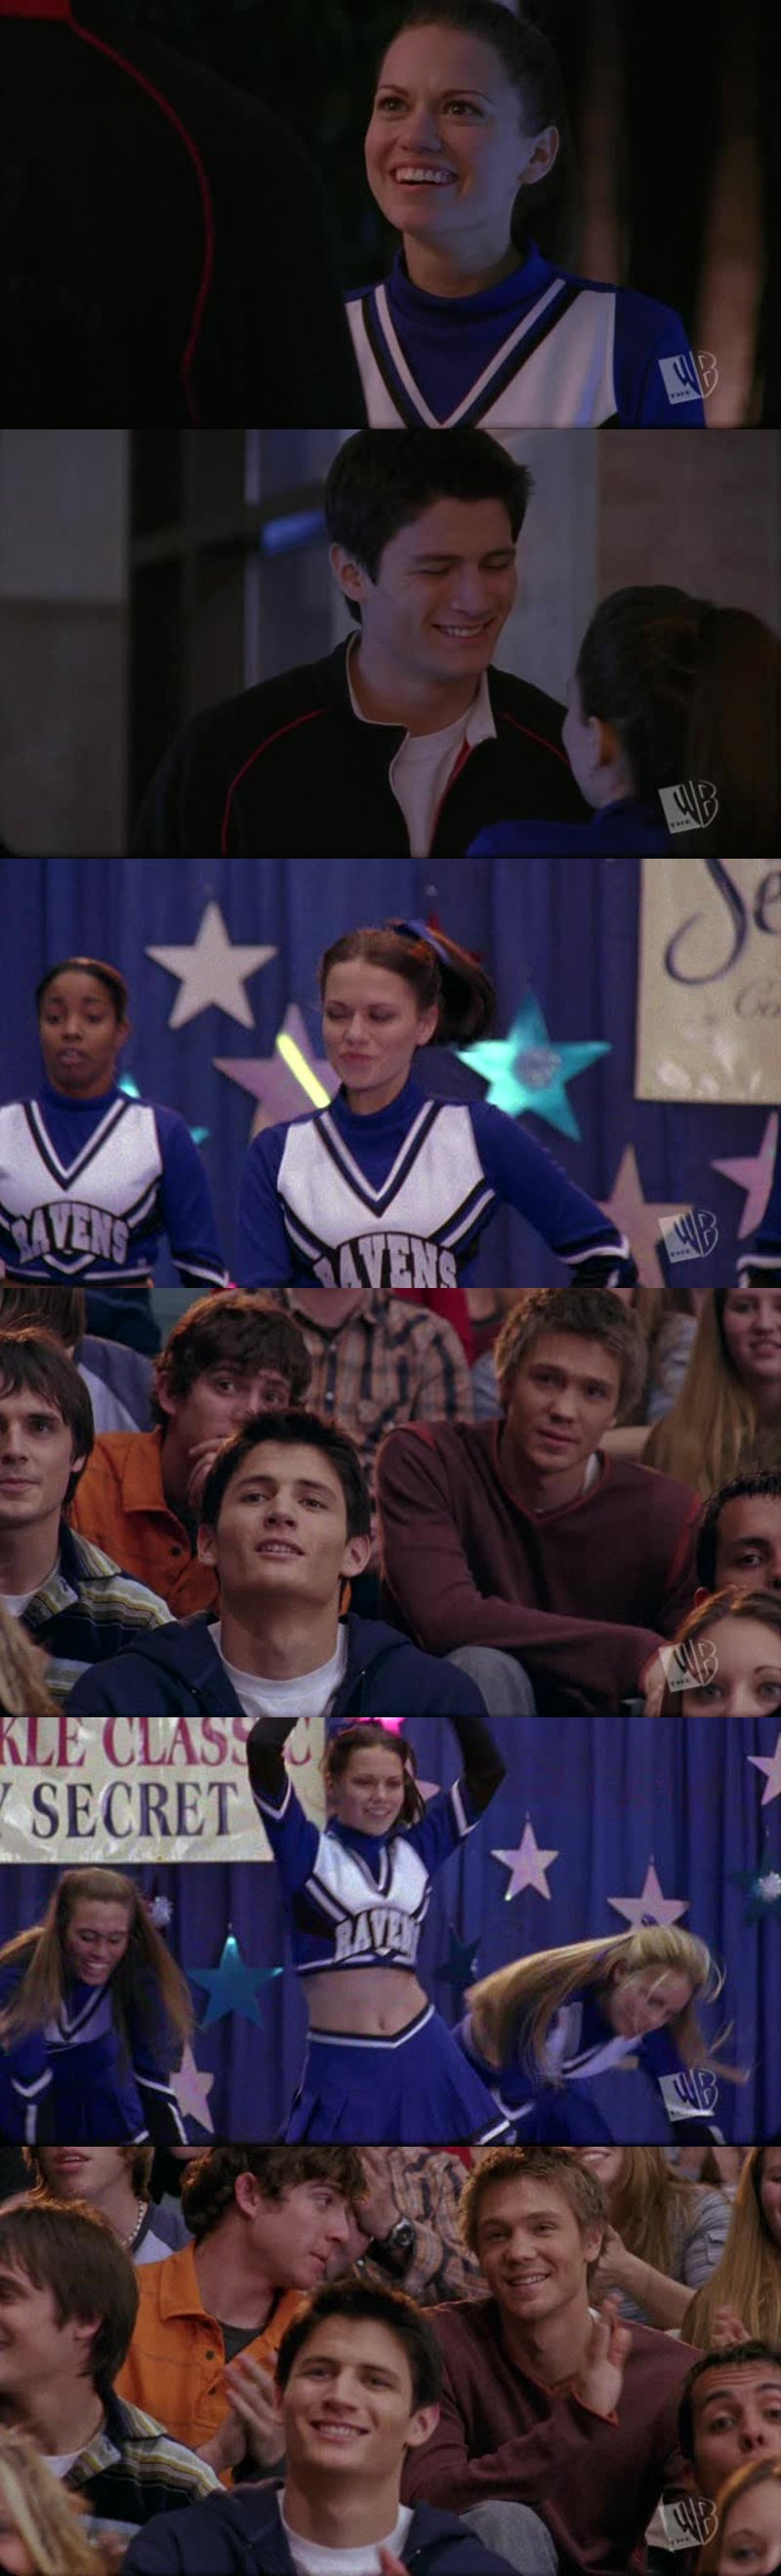 I love when Nathan looks at Haley ❤️